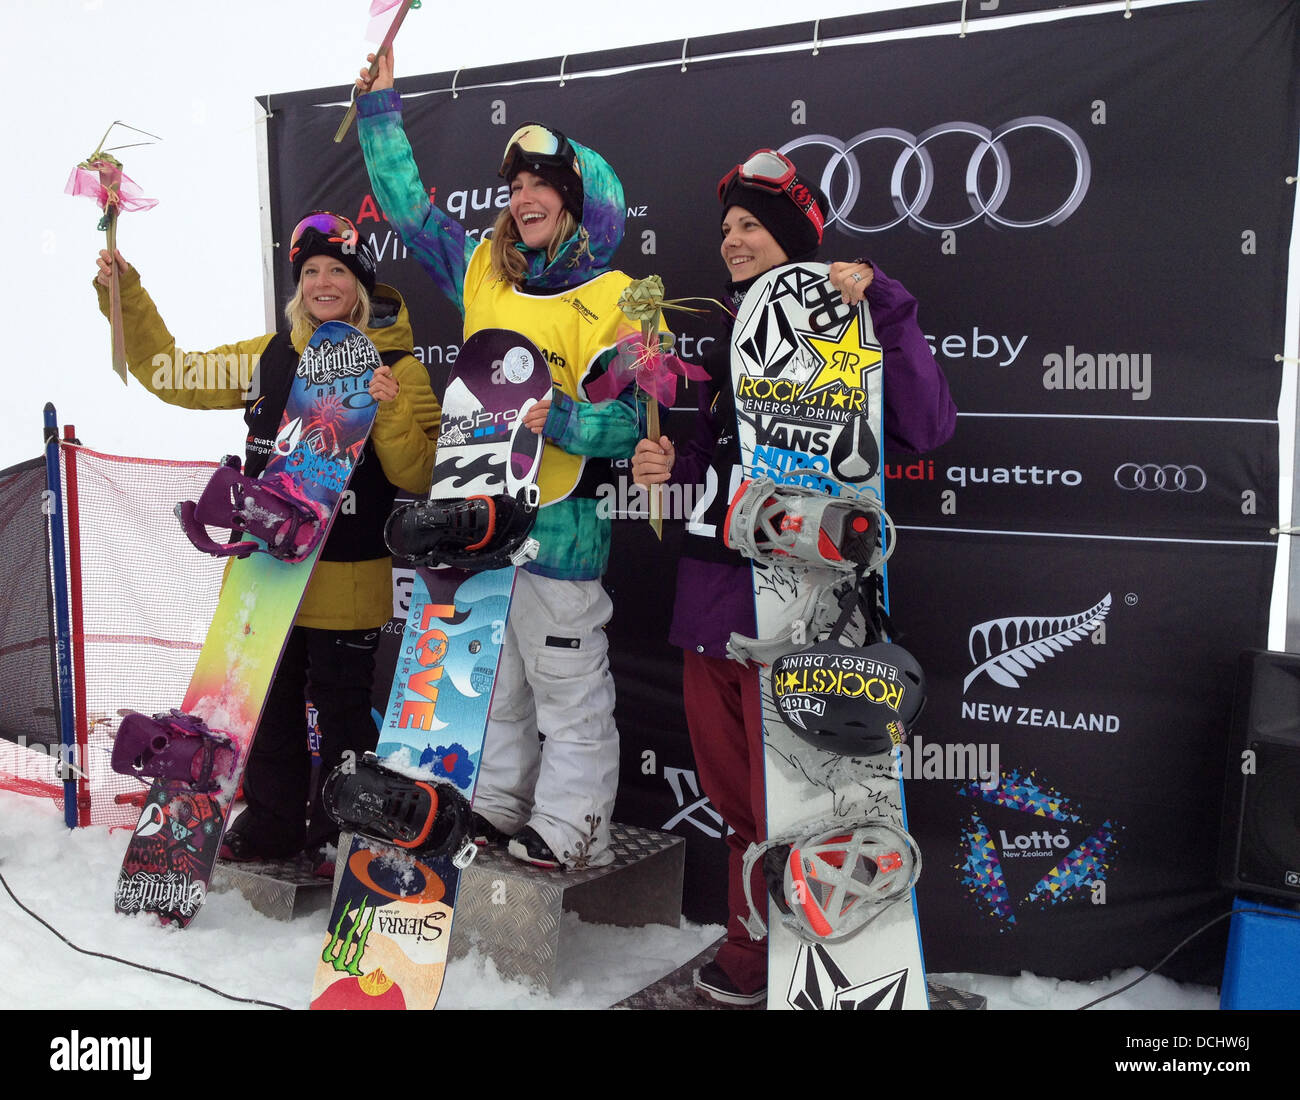 Cardrona, New Zealand. 19th Aug, 2013. Jenny Jones, pictured on the left of the podium, from Bristol UK, takes the - Stock Image